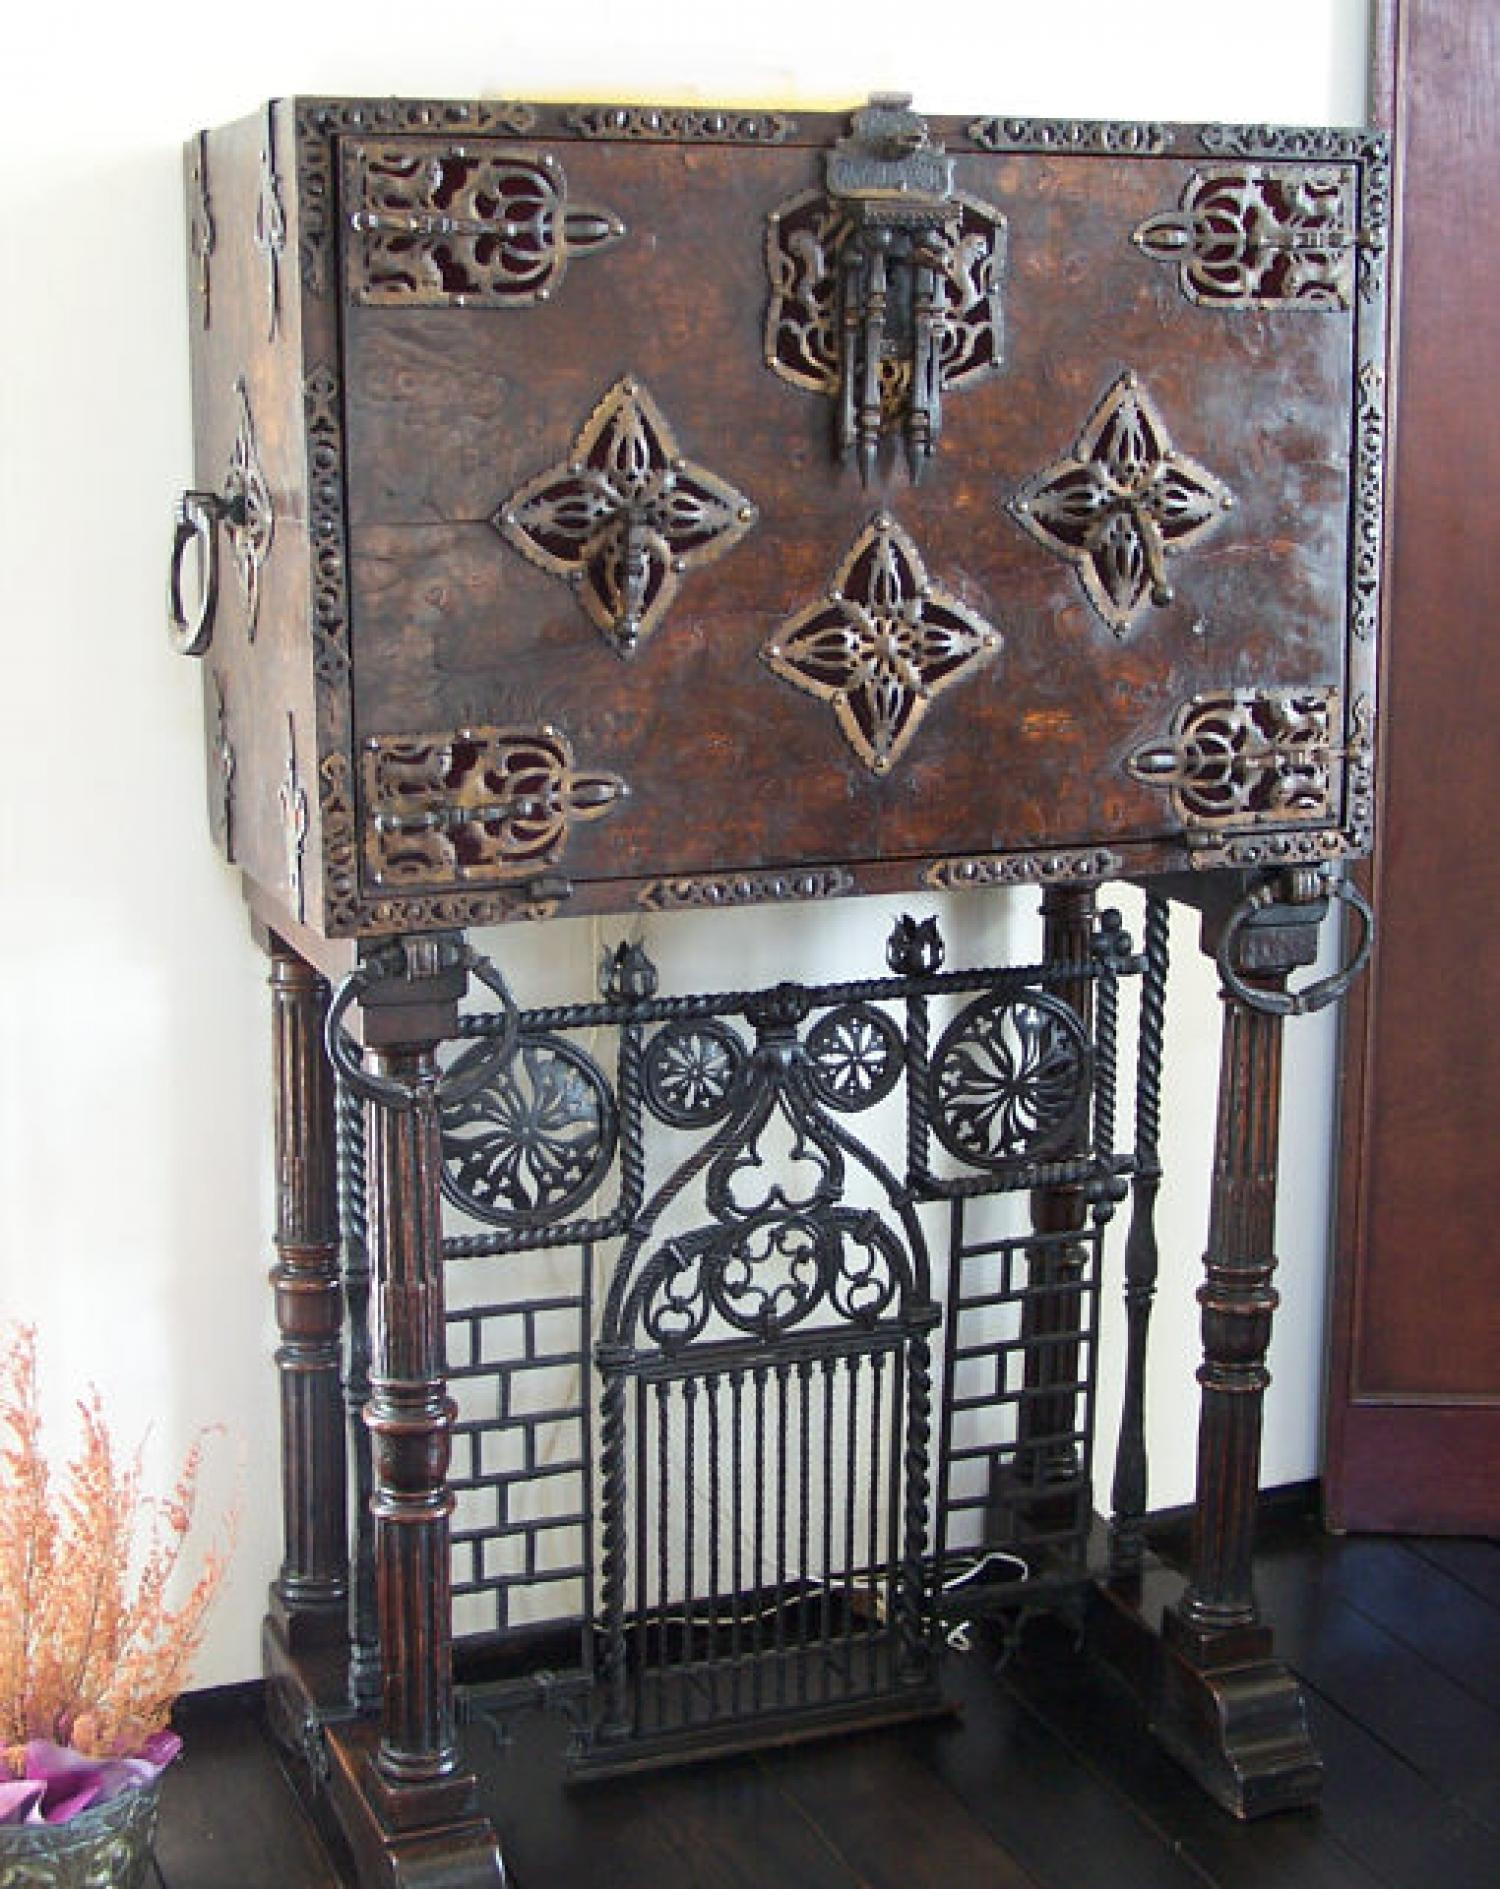 Italian Varqueno in the 17th century style drop front desk